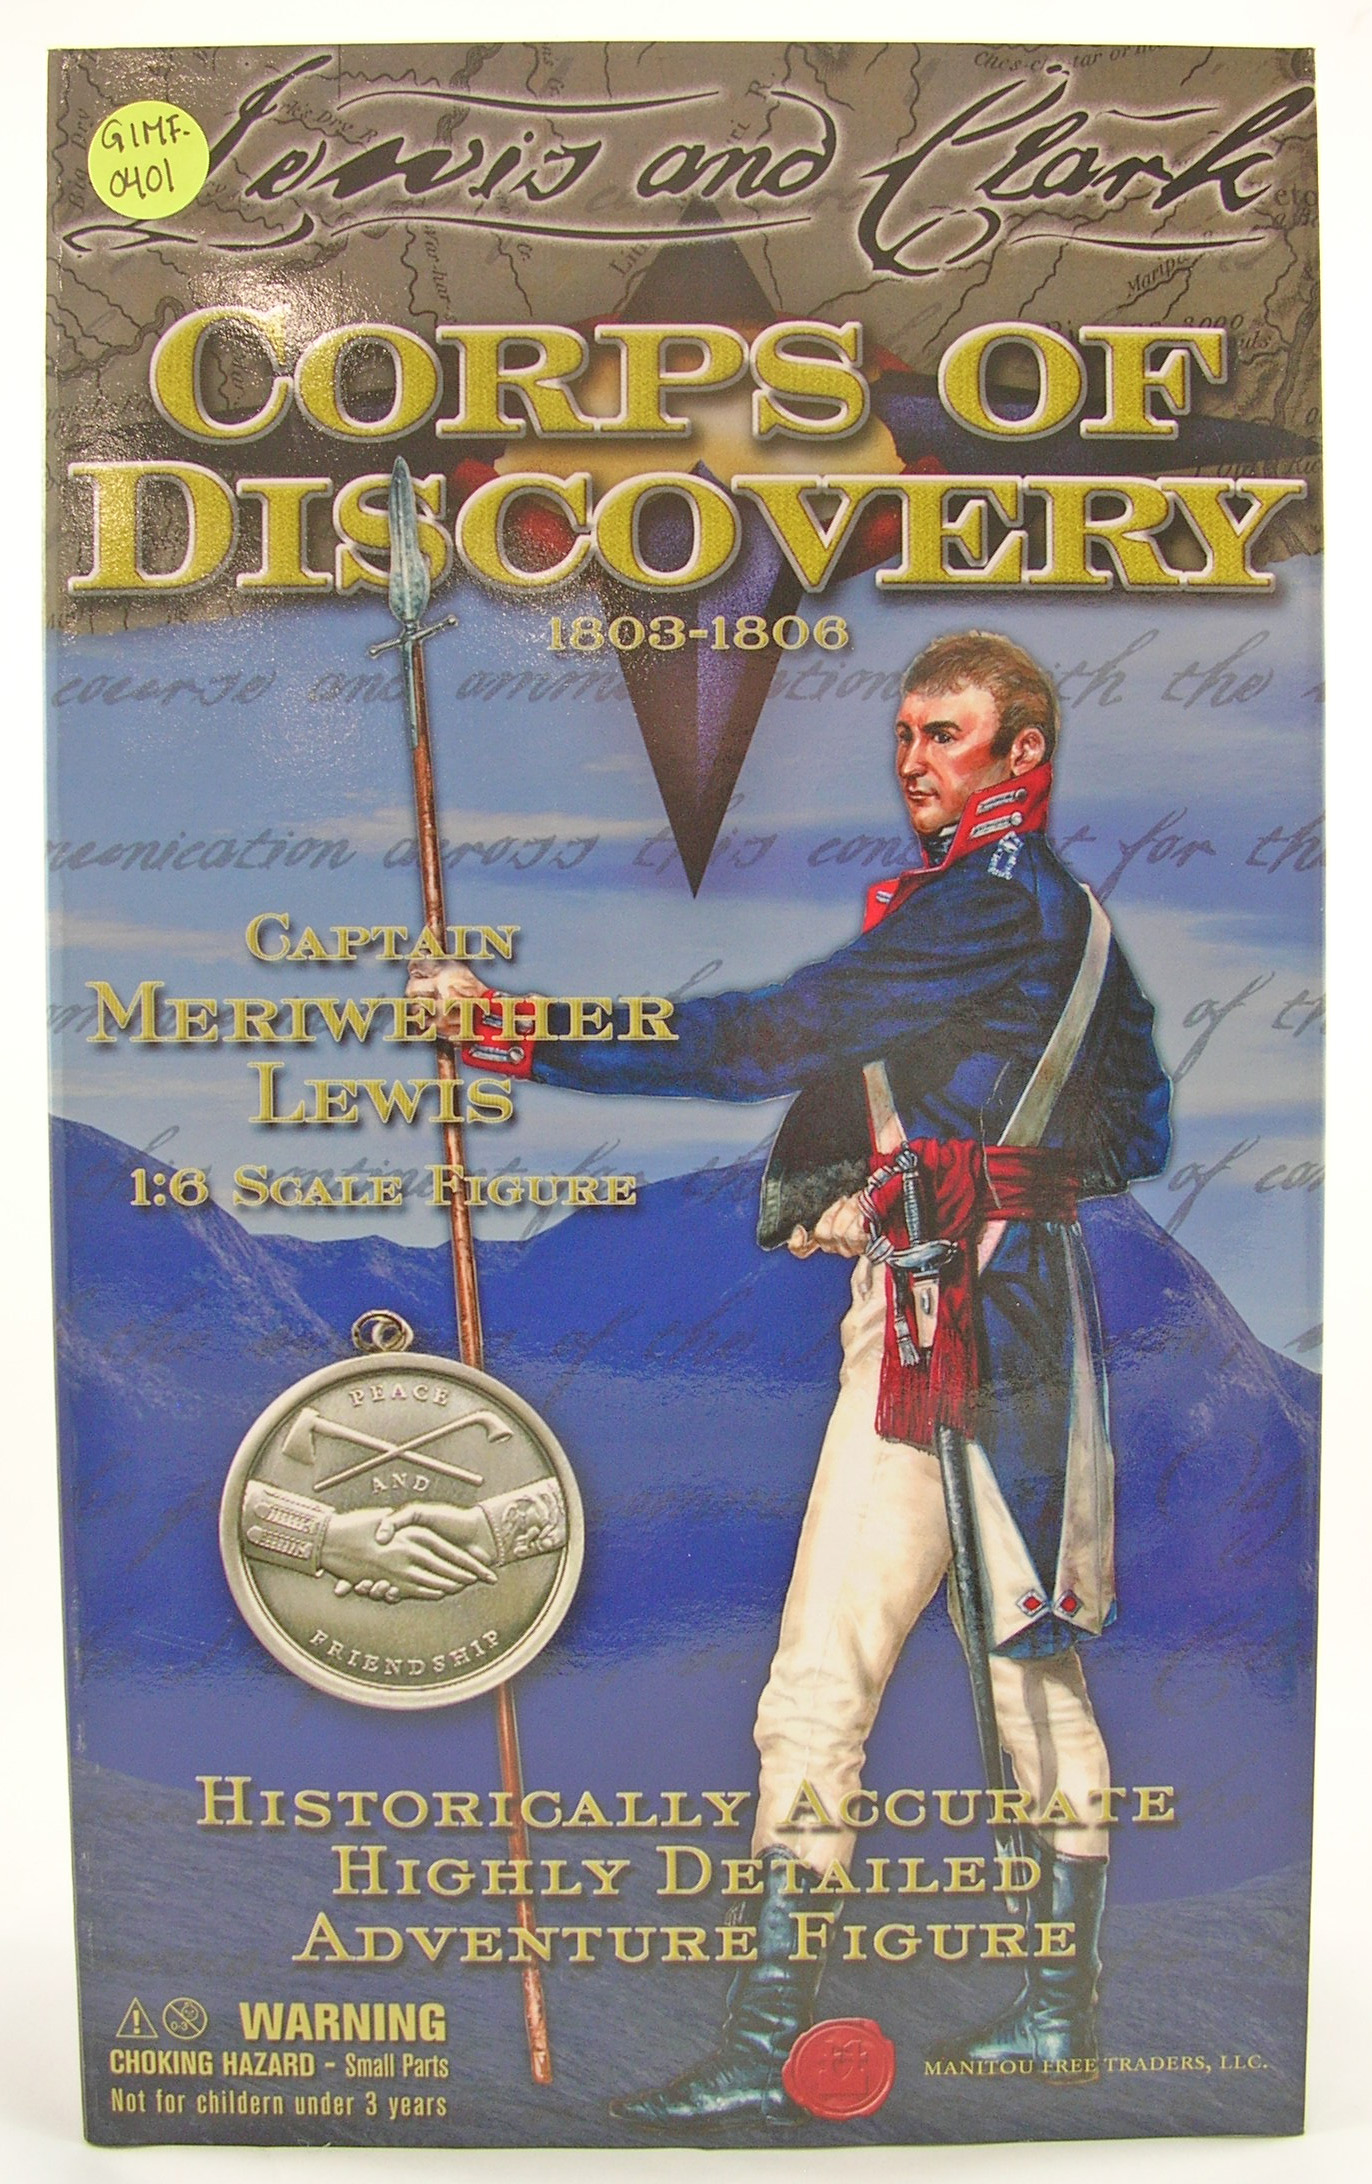 Meriwether Lewis: Corps of Discovery